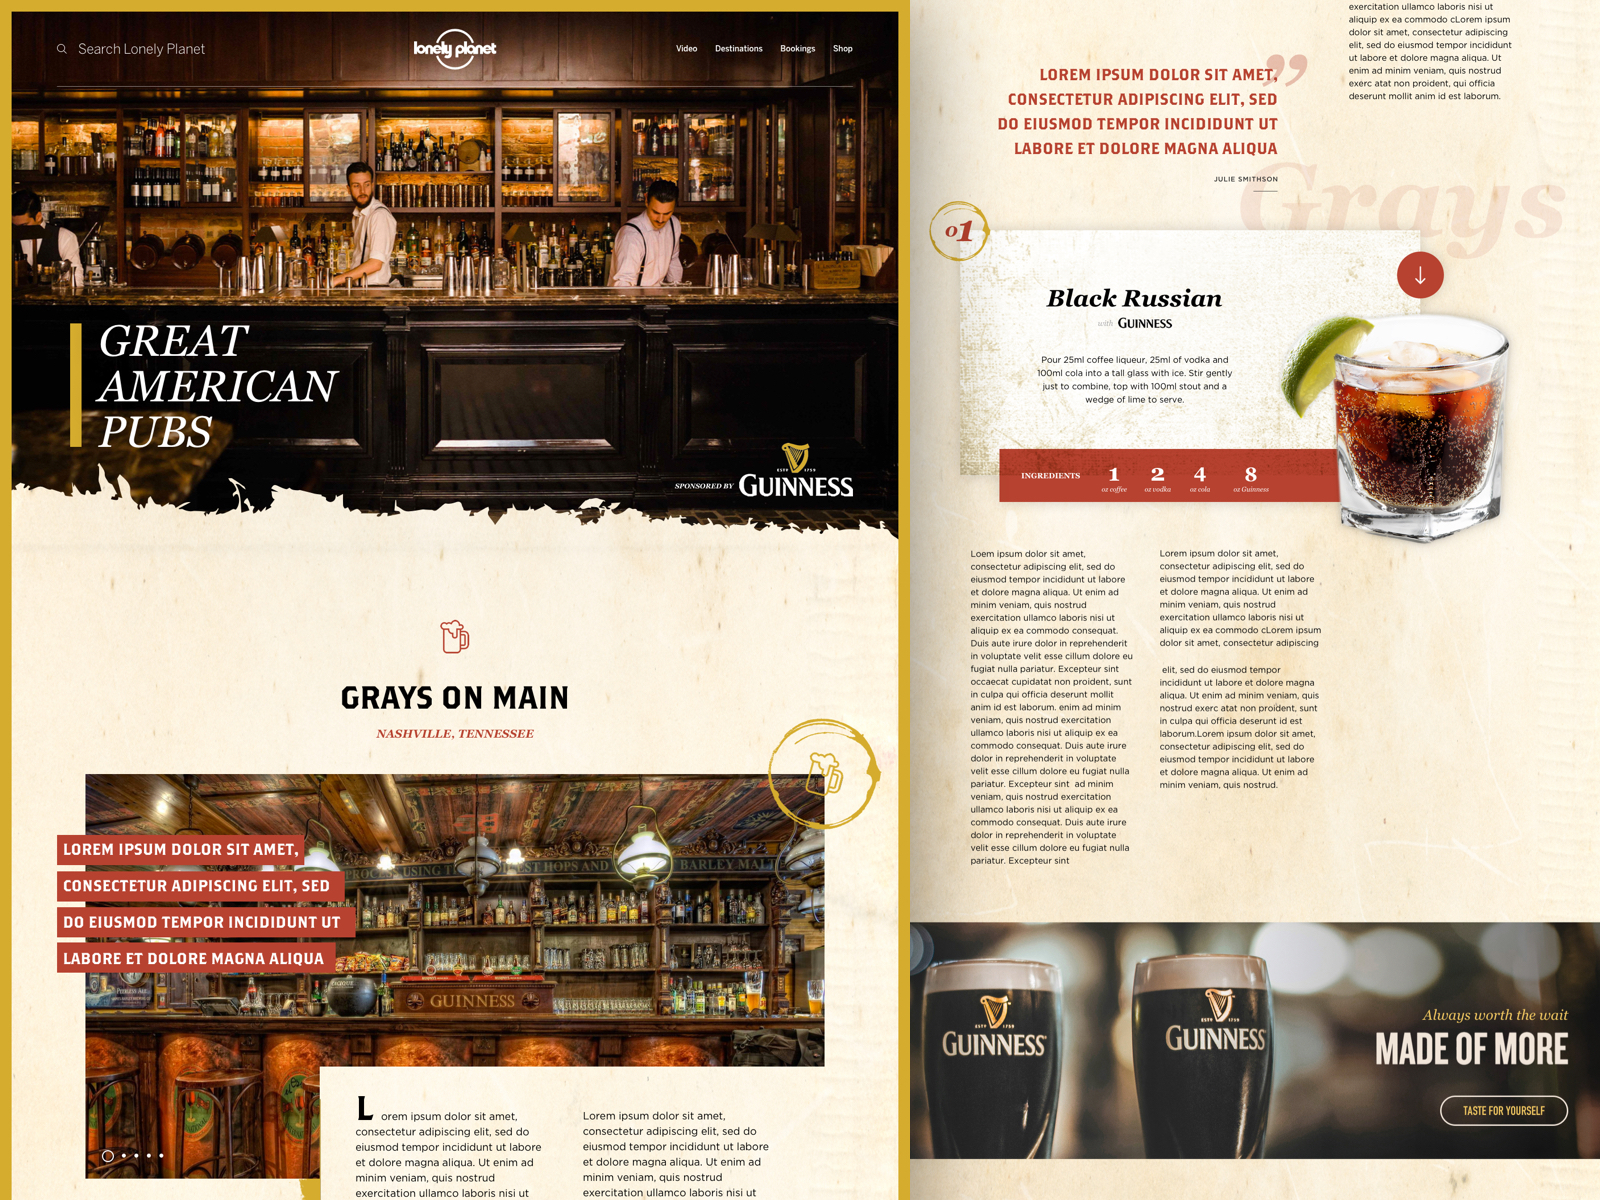 Guinness x Lonely Planet - Concept, art direction, web design